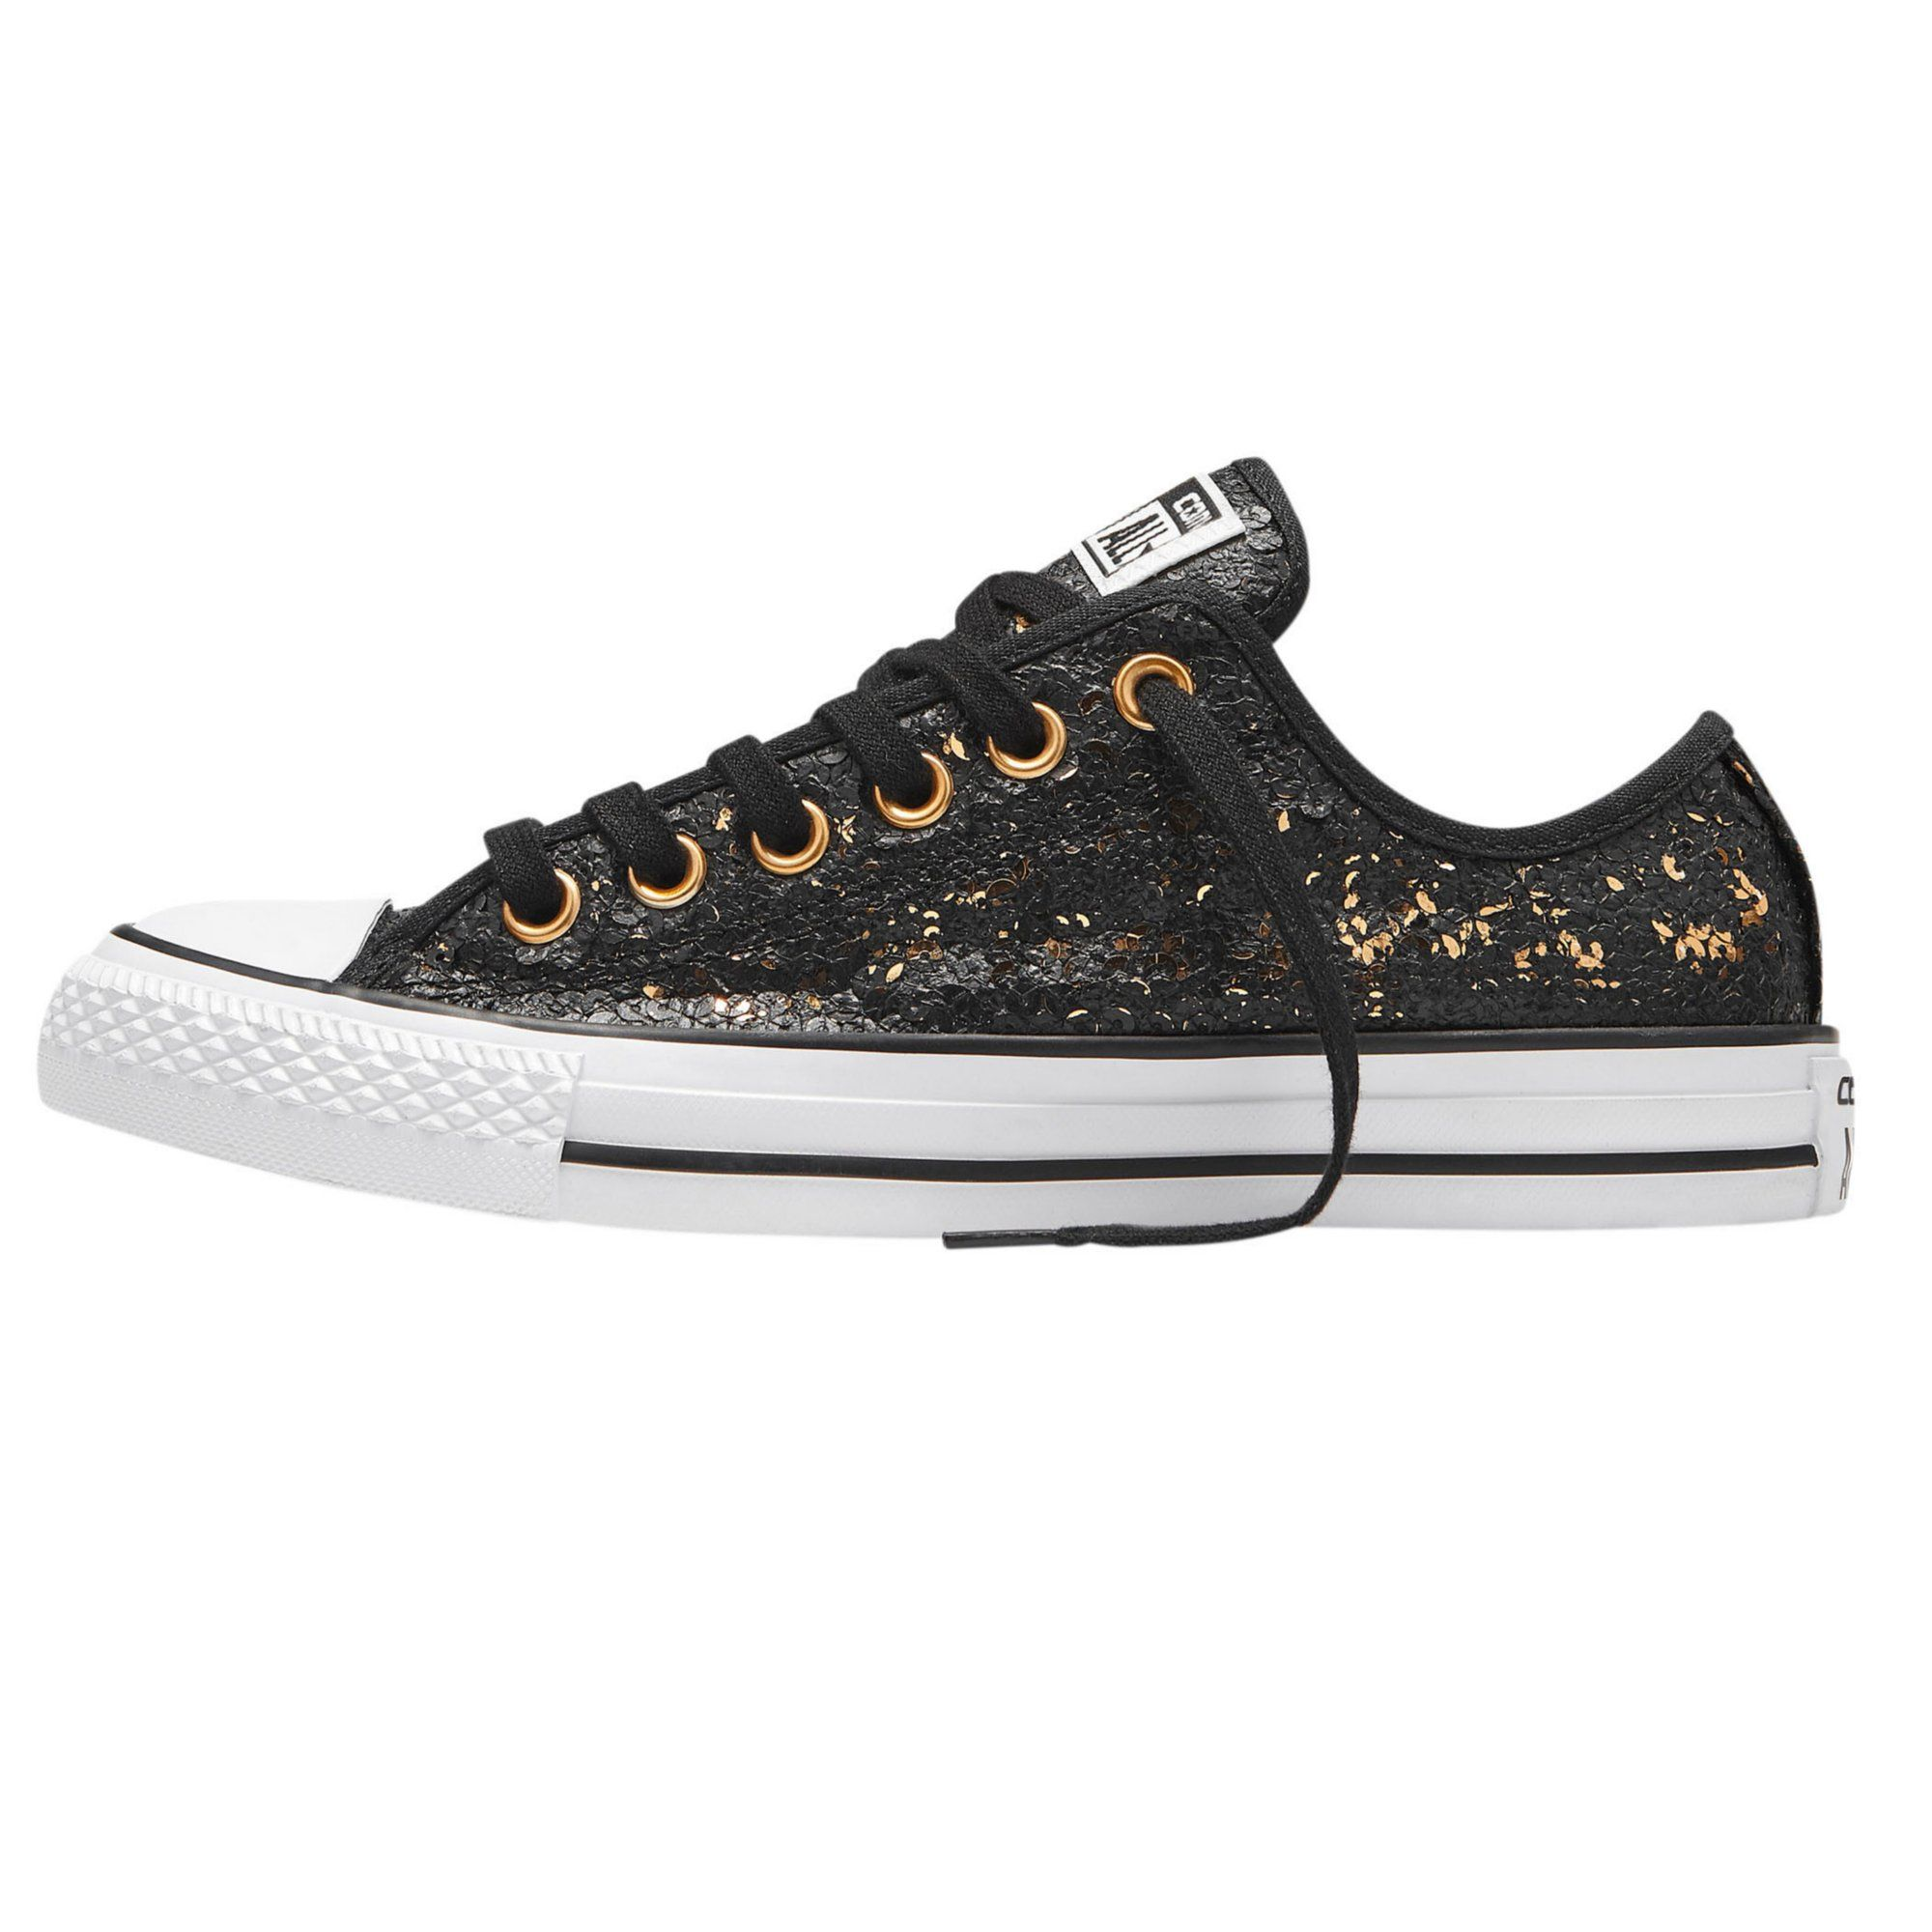 4cce84c80f8 Converse CT All Star Sequins basket basse à lacets strass femme - 3Suisses